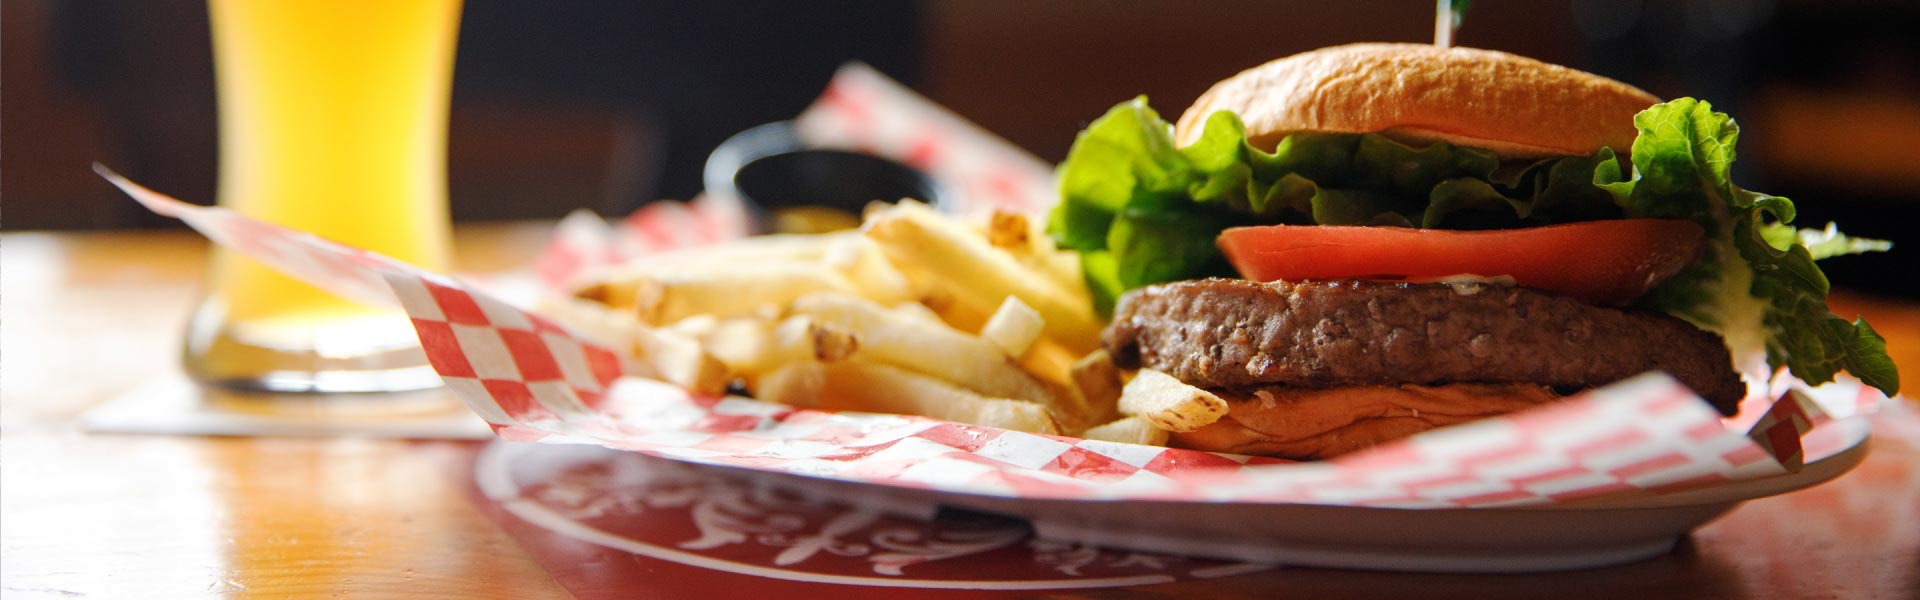 Angus Burger with french fries